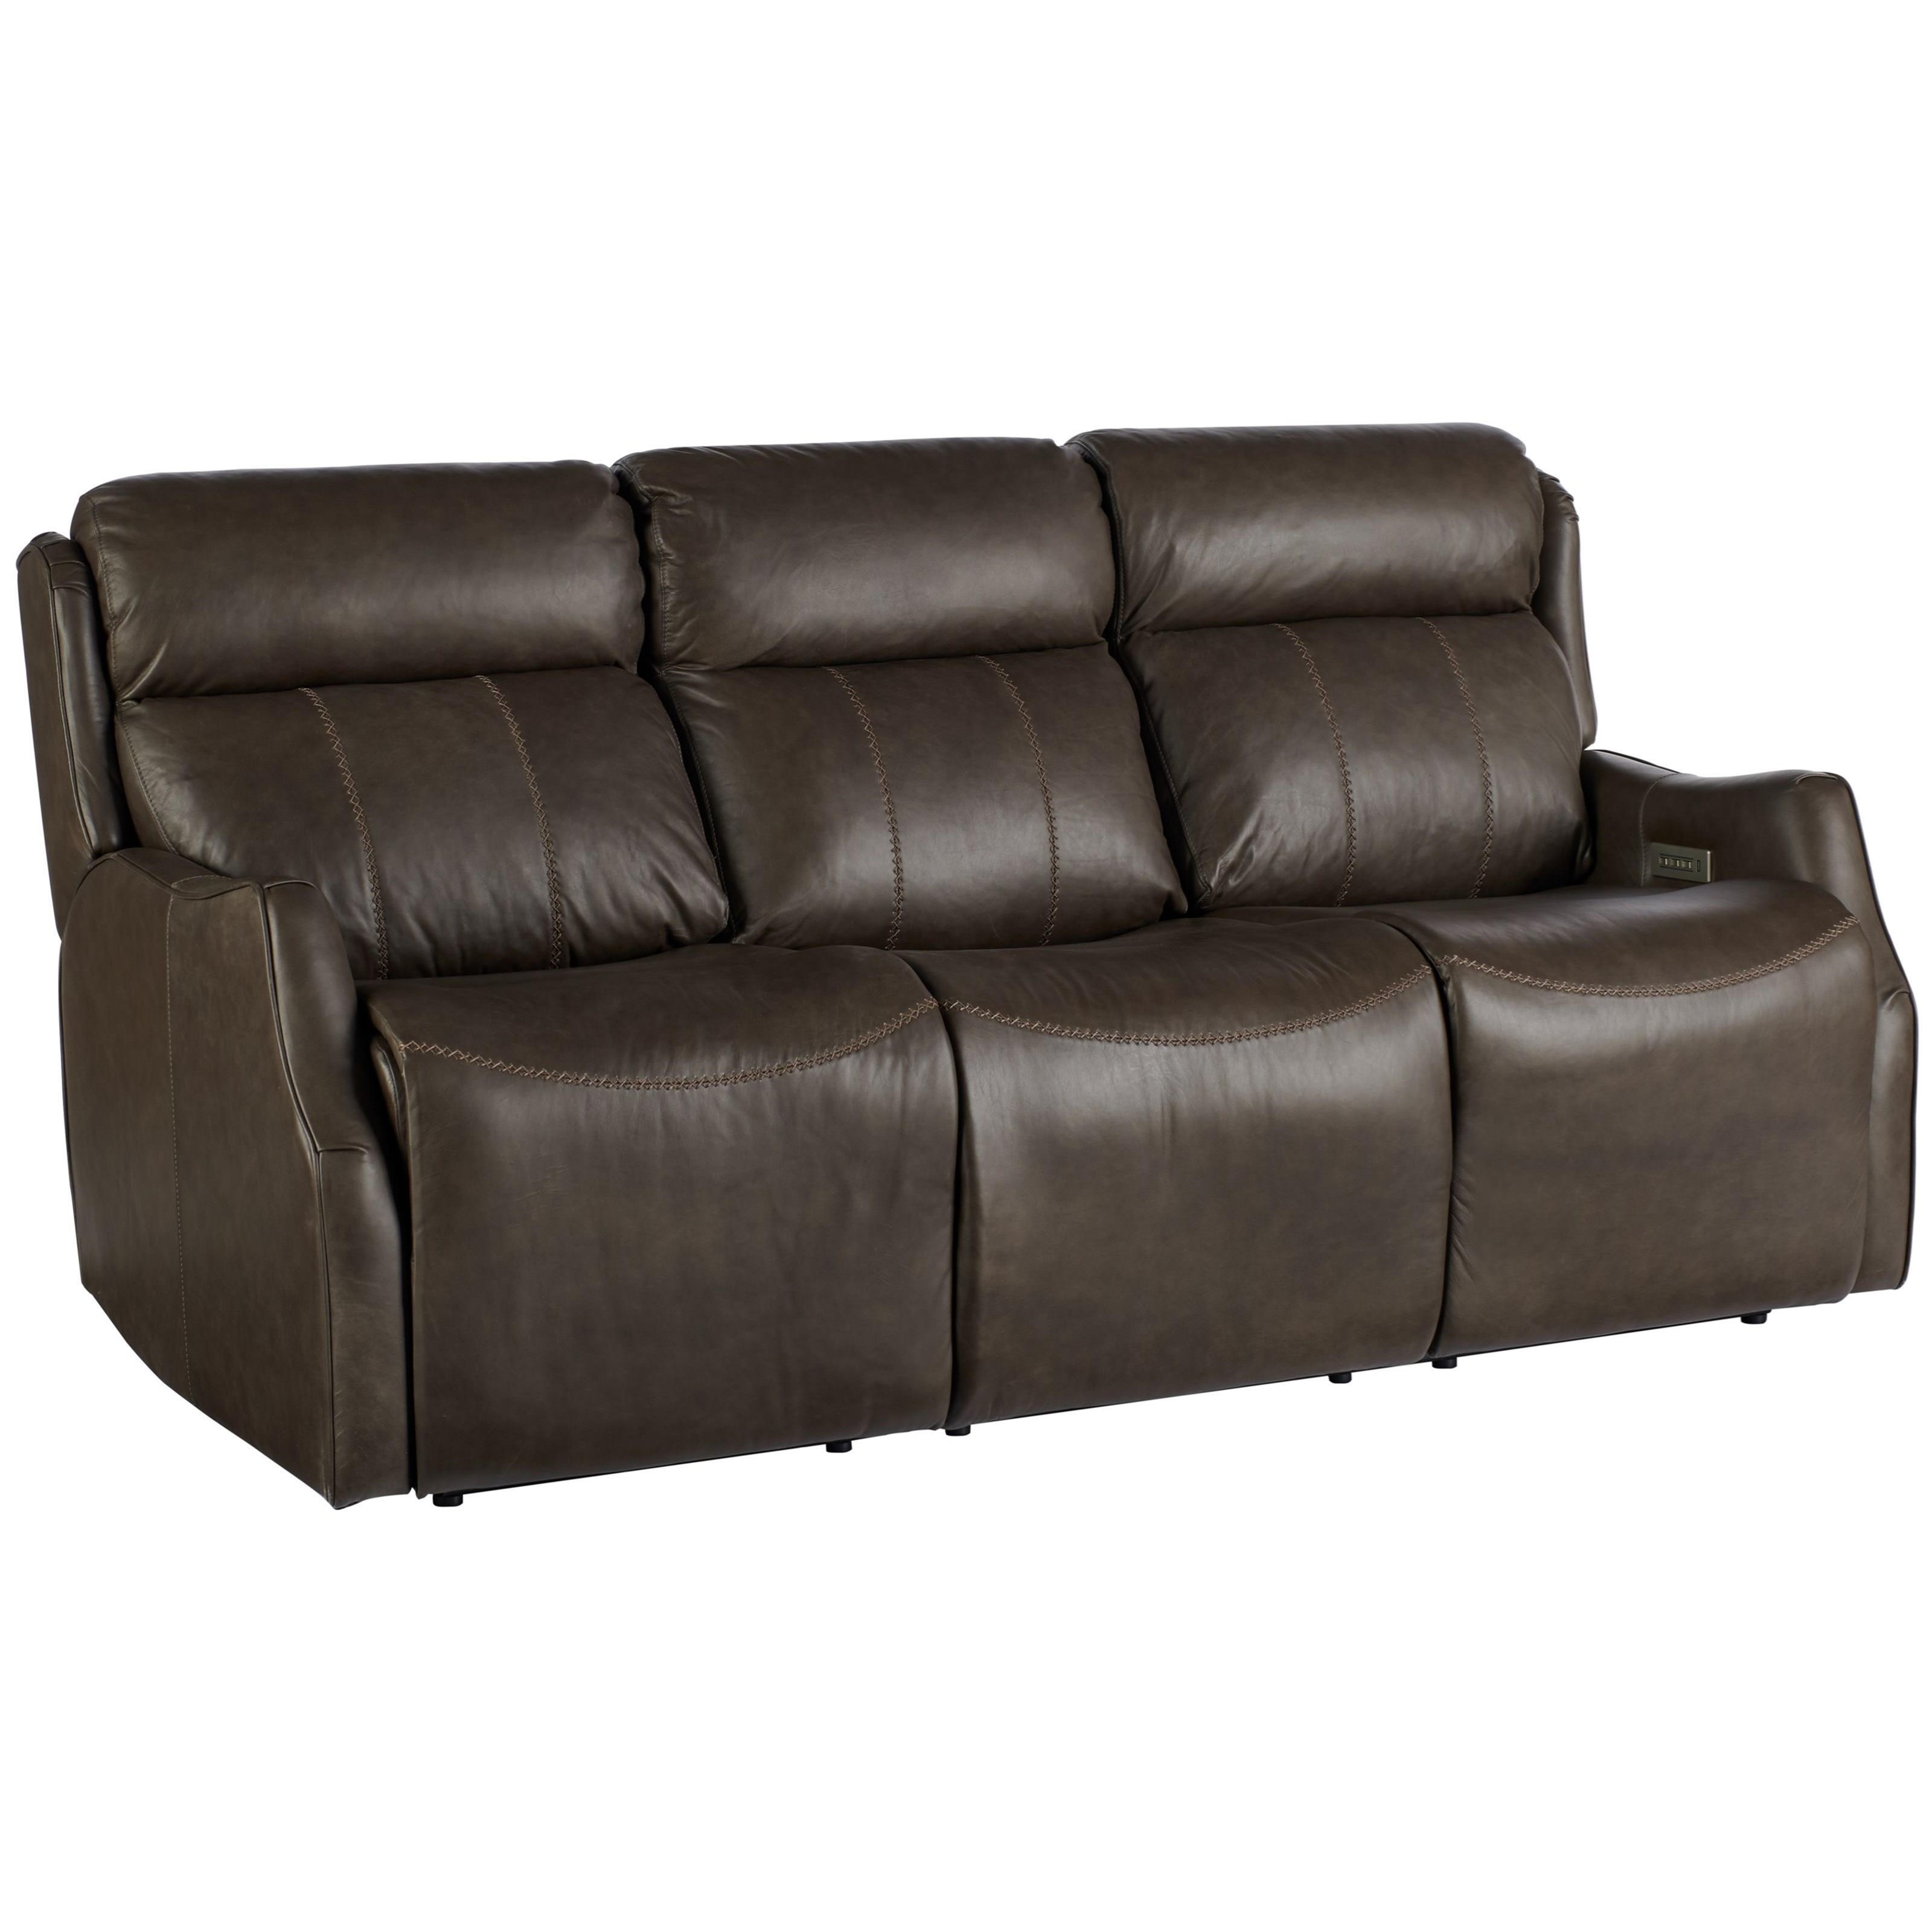 Motion Watson Motion Sofa by Universal at Baer's Furniture